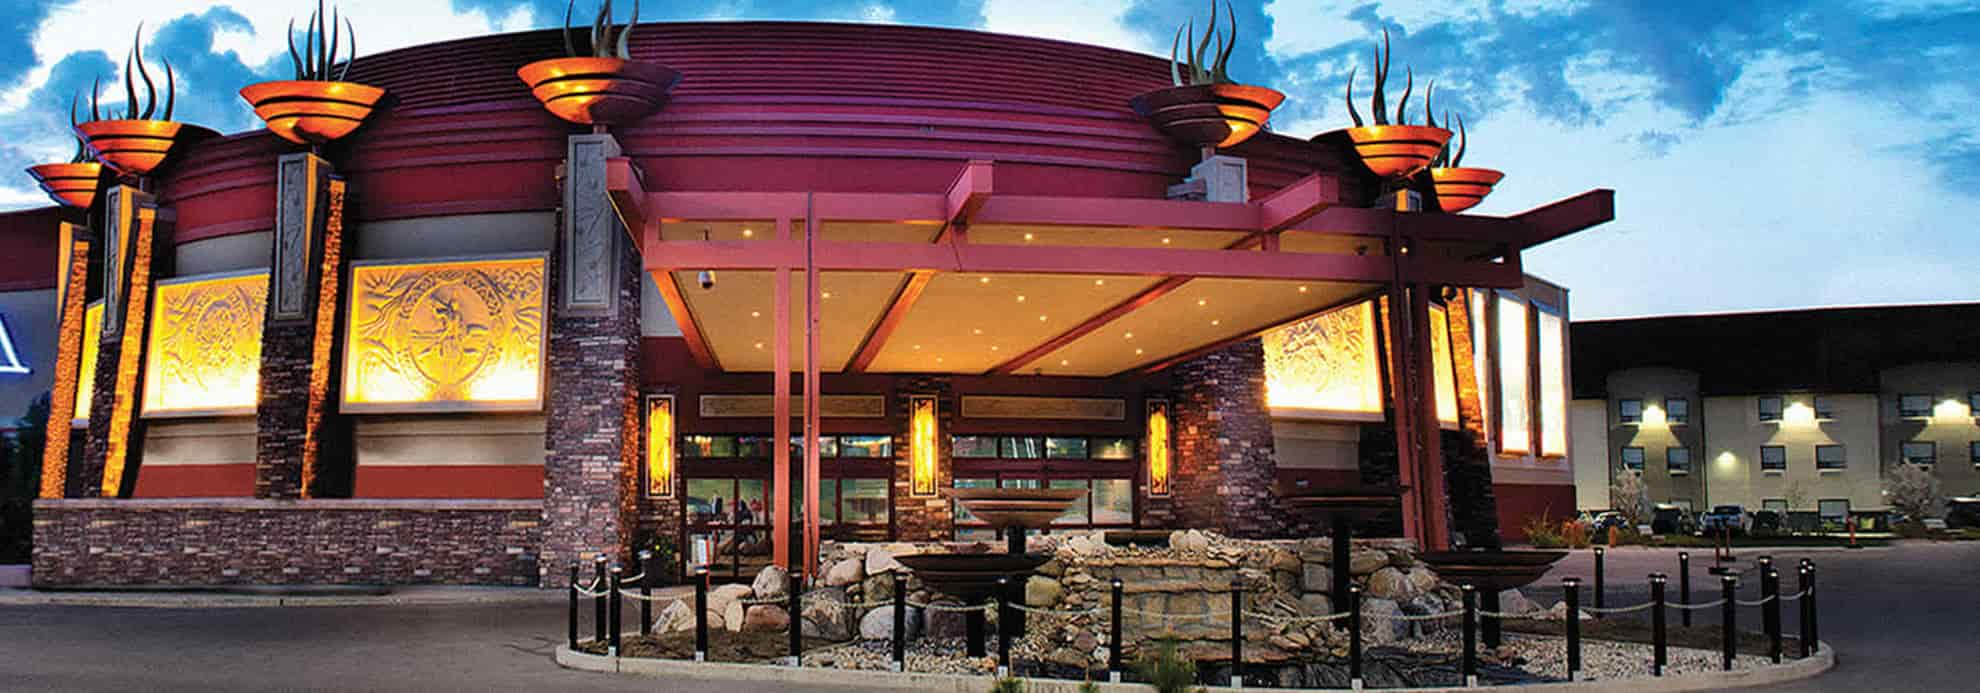 First Nation Casino front view